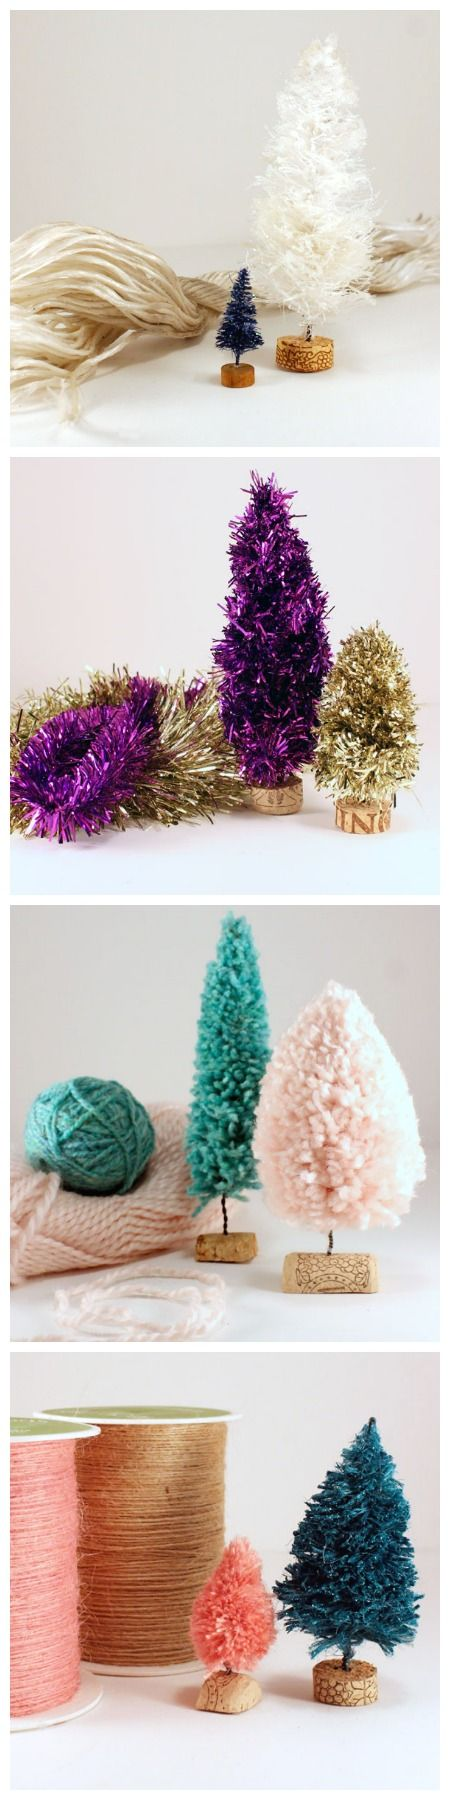 Tutorial for creating rope, garland, yarn and twine, bottle brush trees